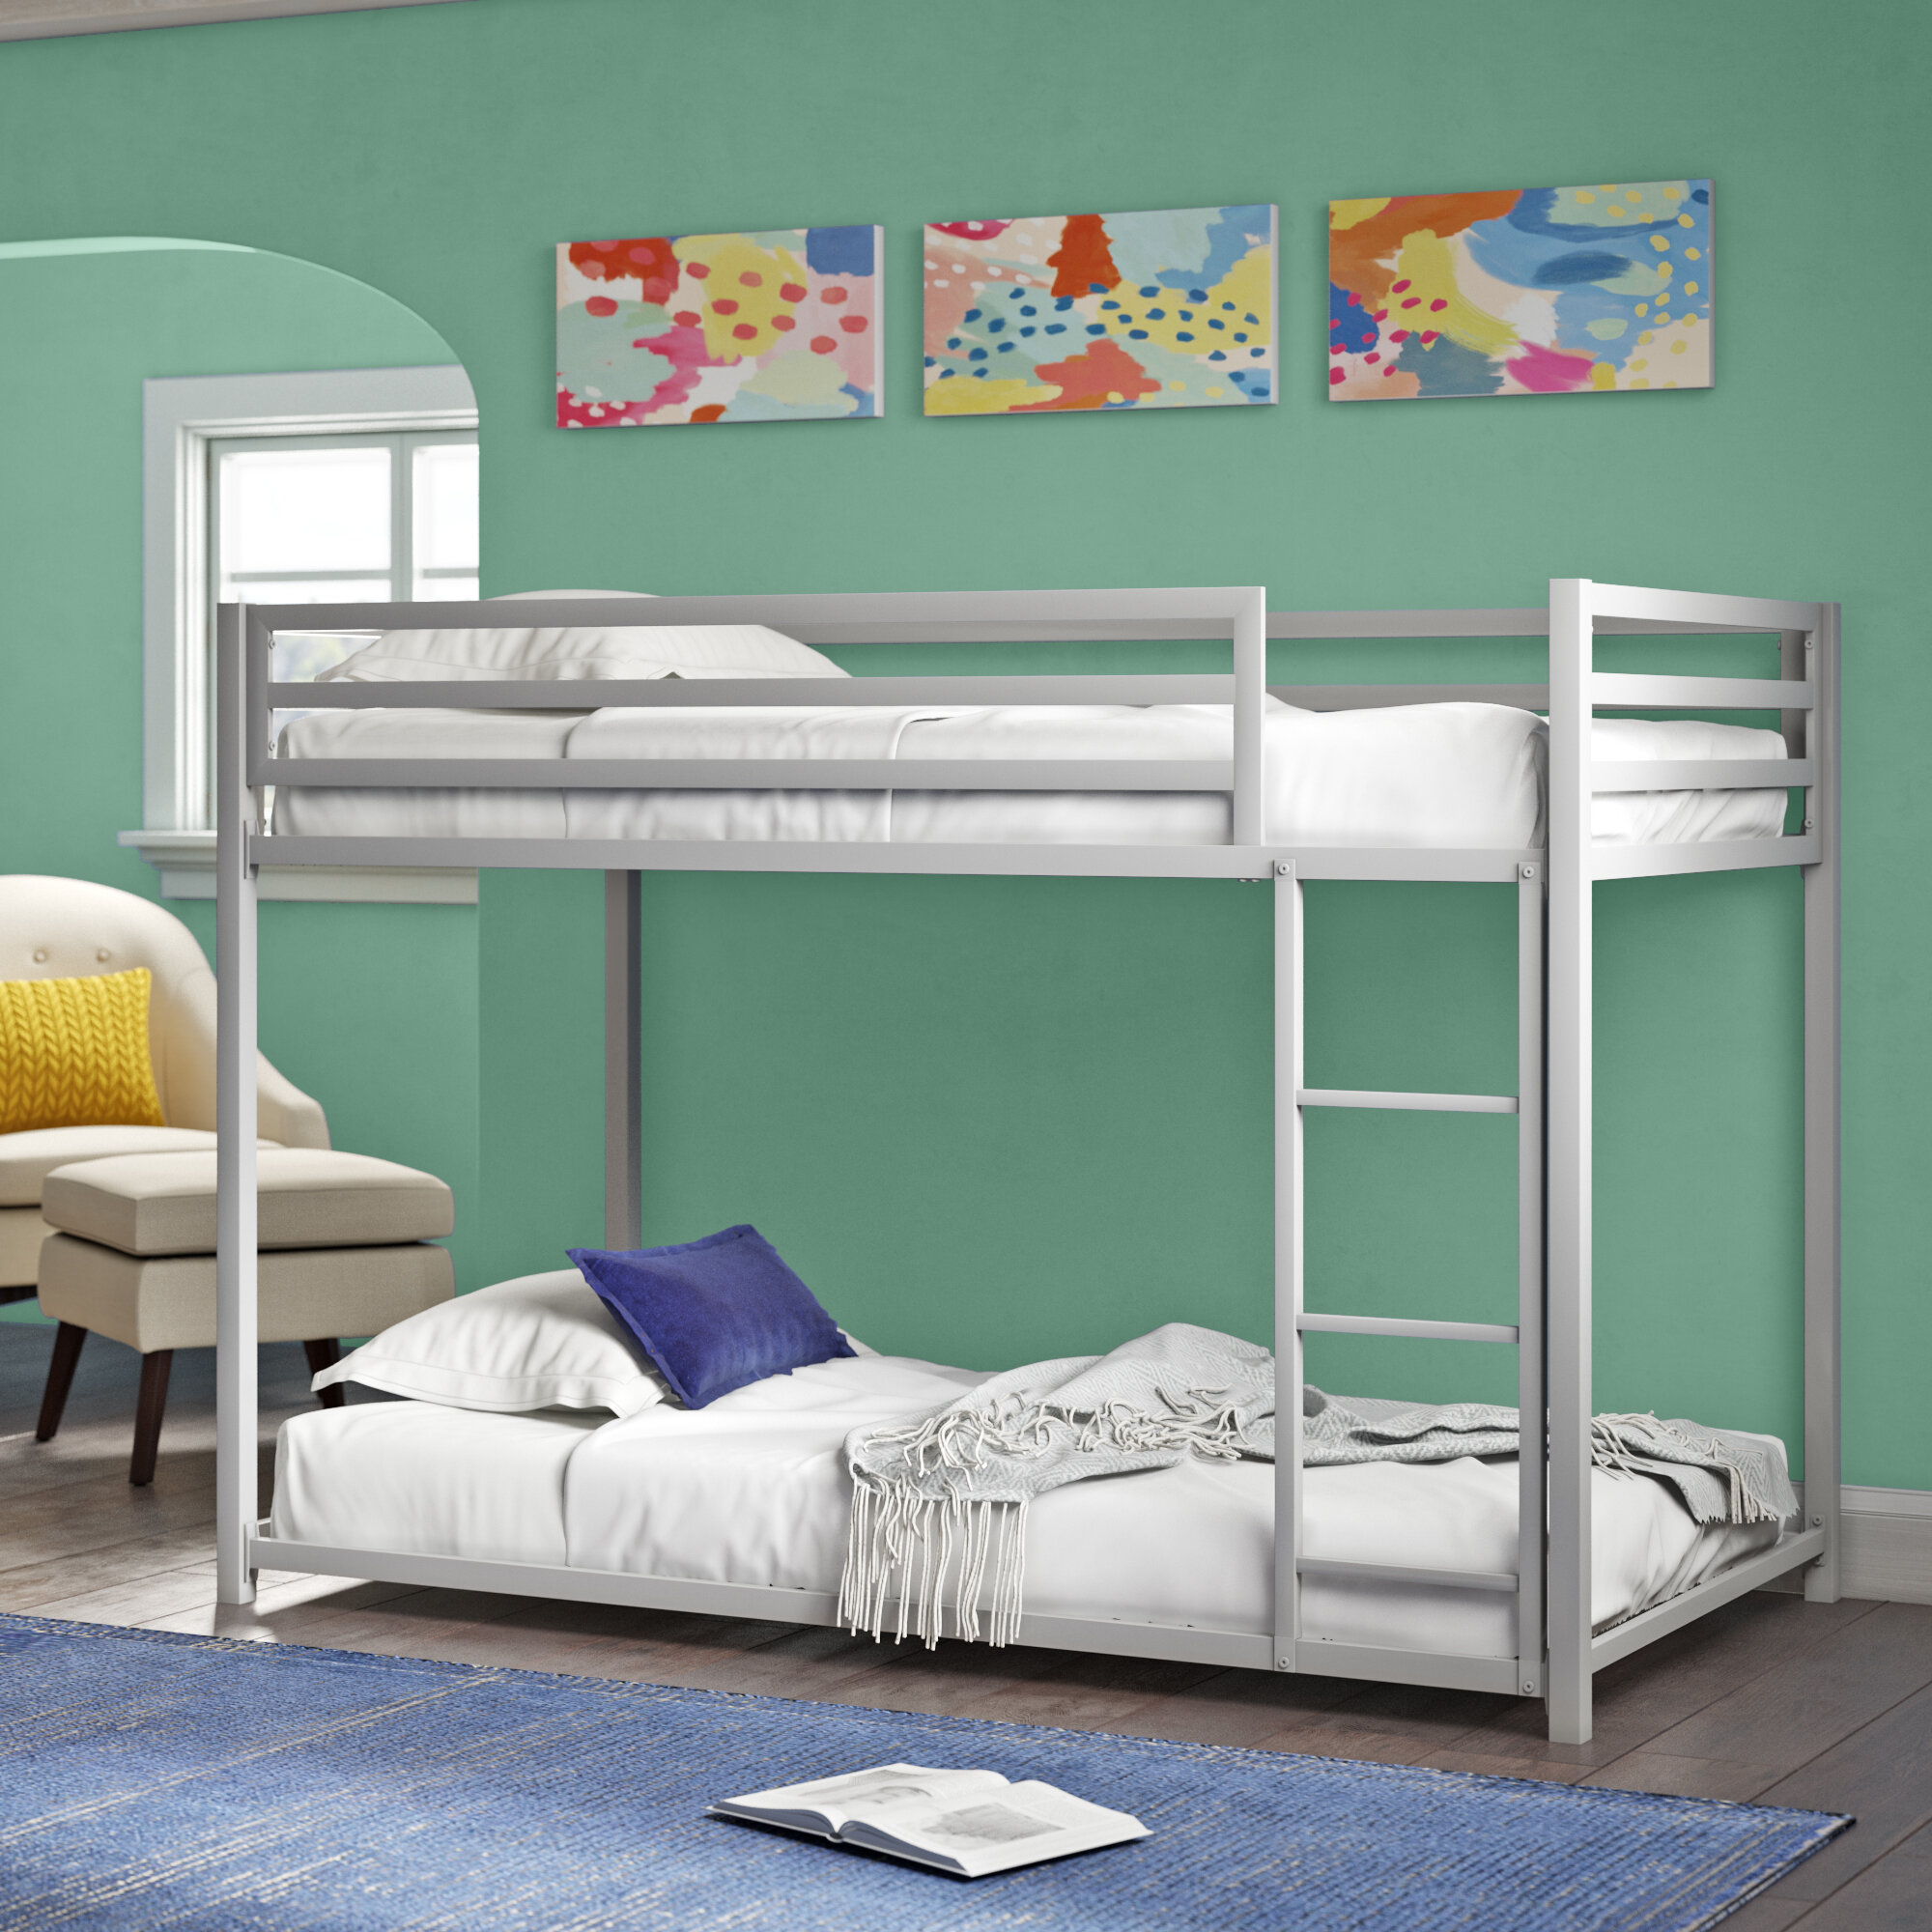 Picture of: Harriet Bee Simoneau Bunk Bed Reviews